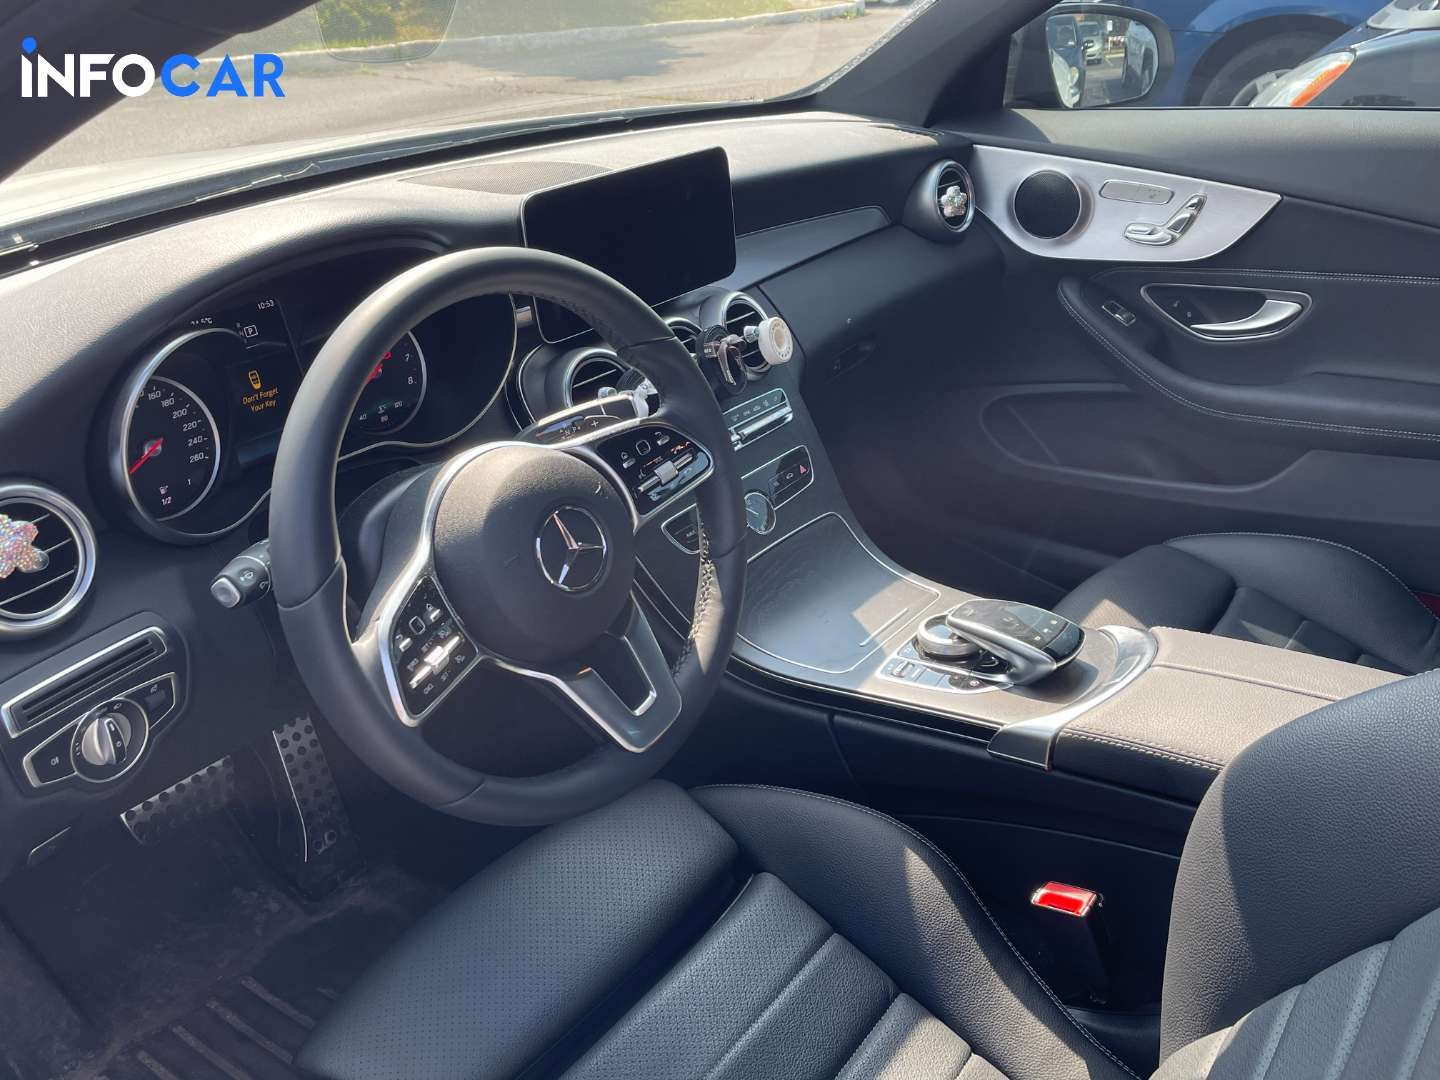 2020 Mercedes-Benz C-Class 300 - INFOCAR - Toronto's Most Comprehensive New and Used Auto Trading Platform